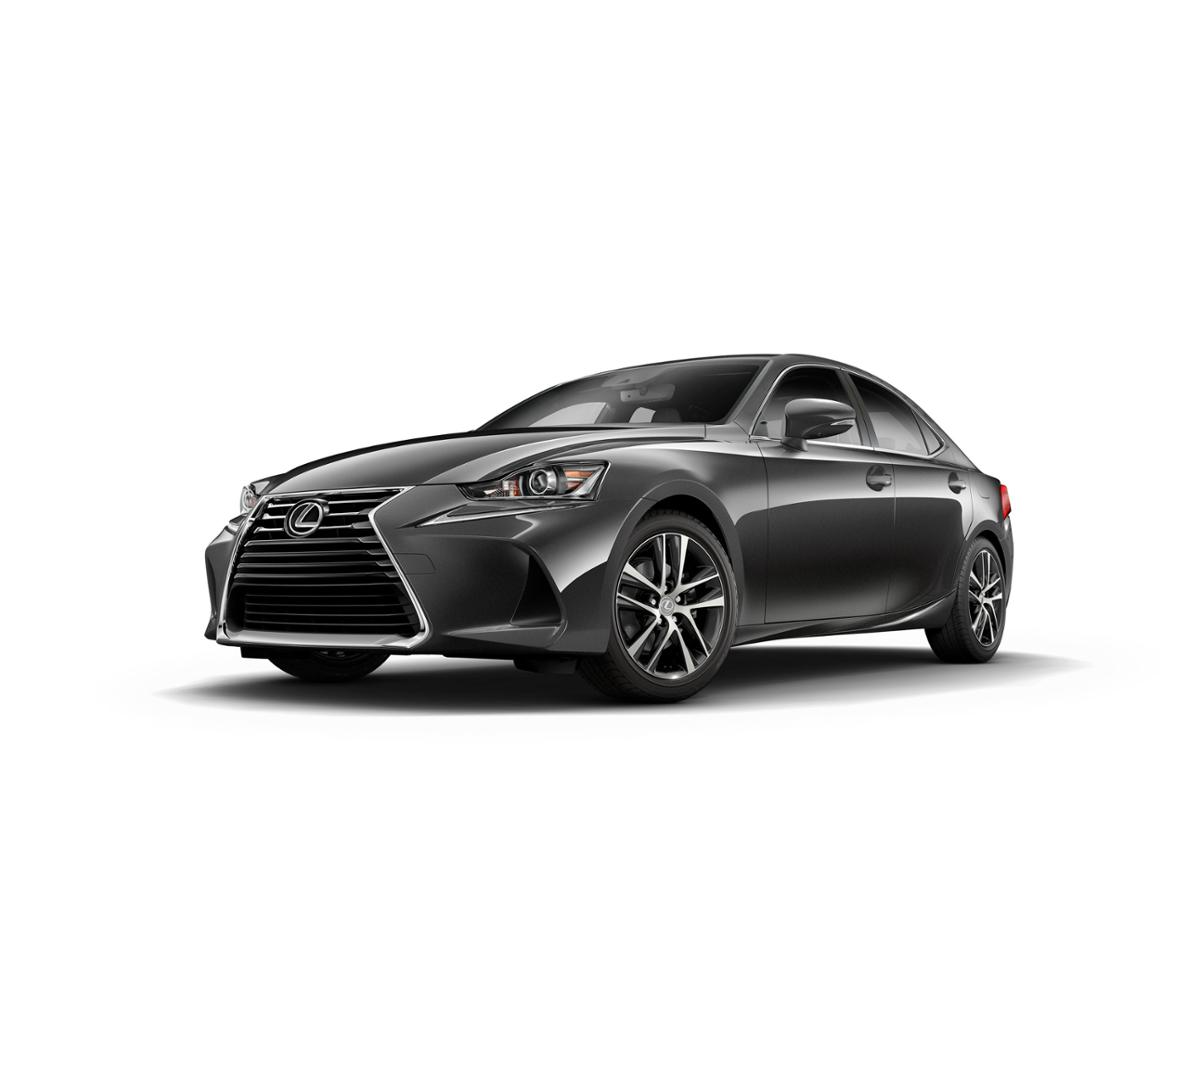 2019 Lexus IS 300 Vehicle Photo in Las Vegas, NV 89146